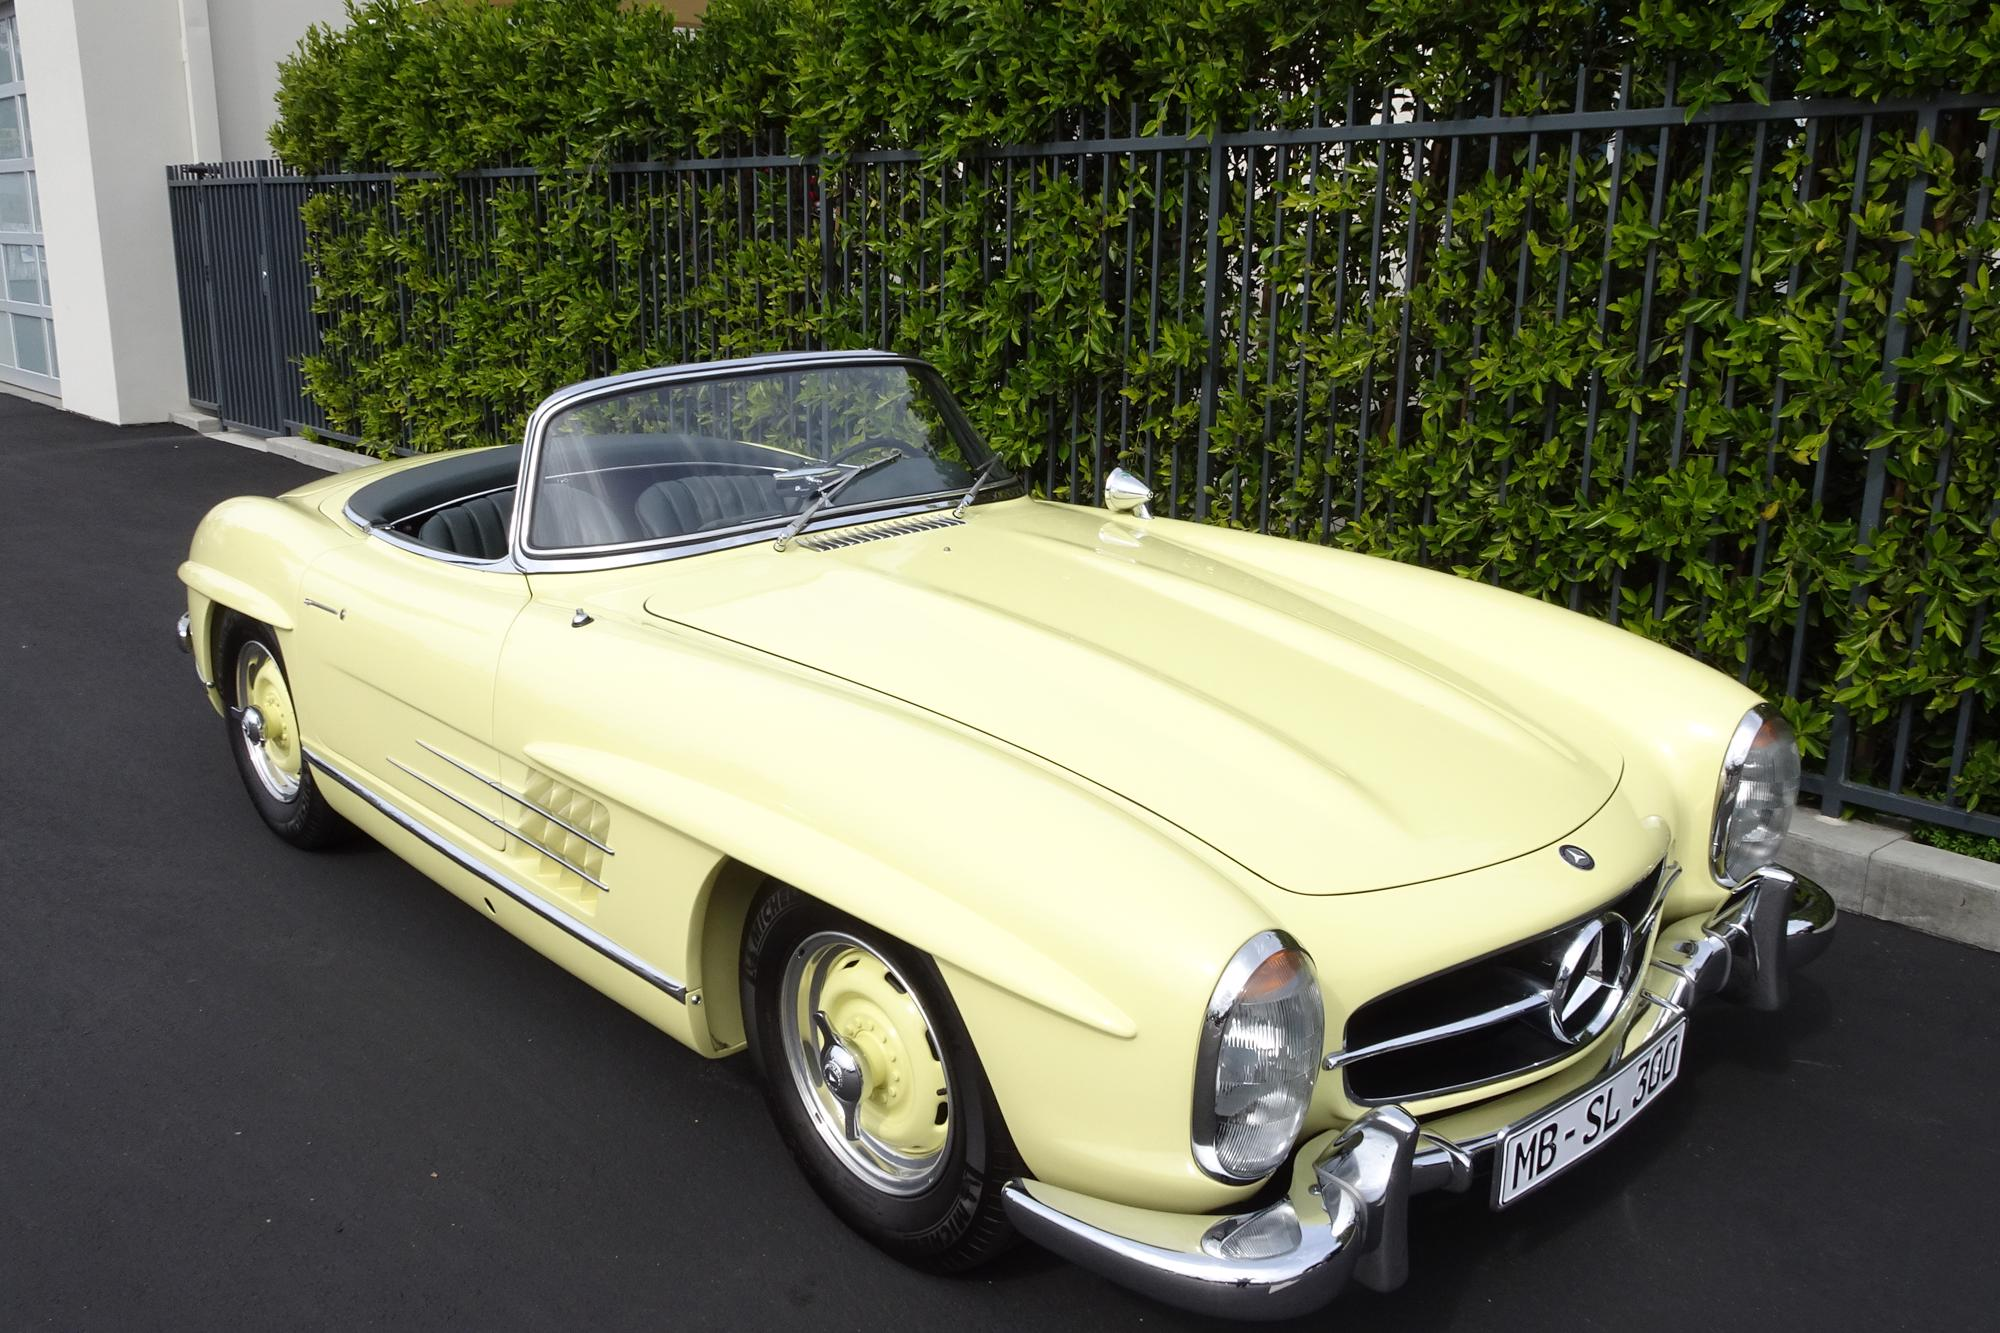 1961 Mercedes-Benz 300SL Roadster with Hardtop